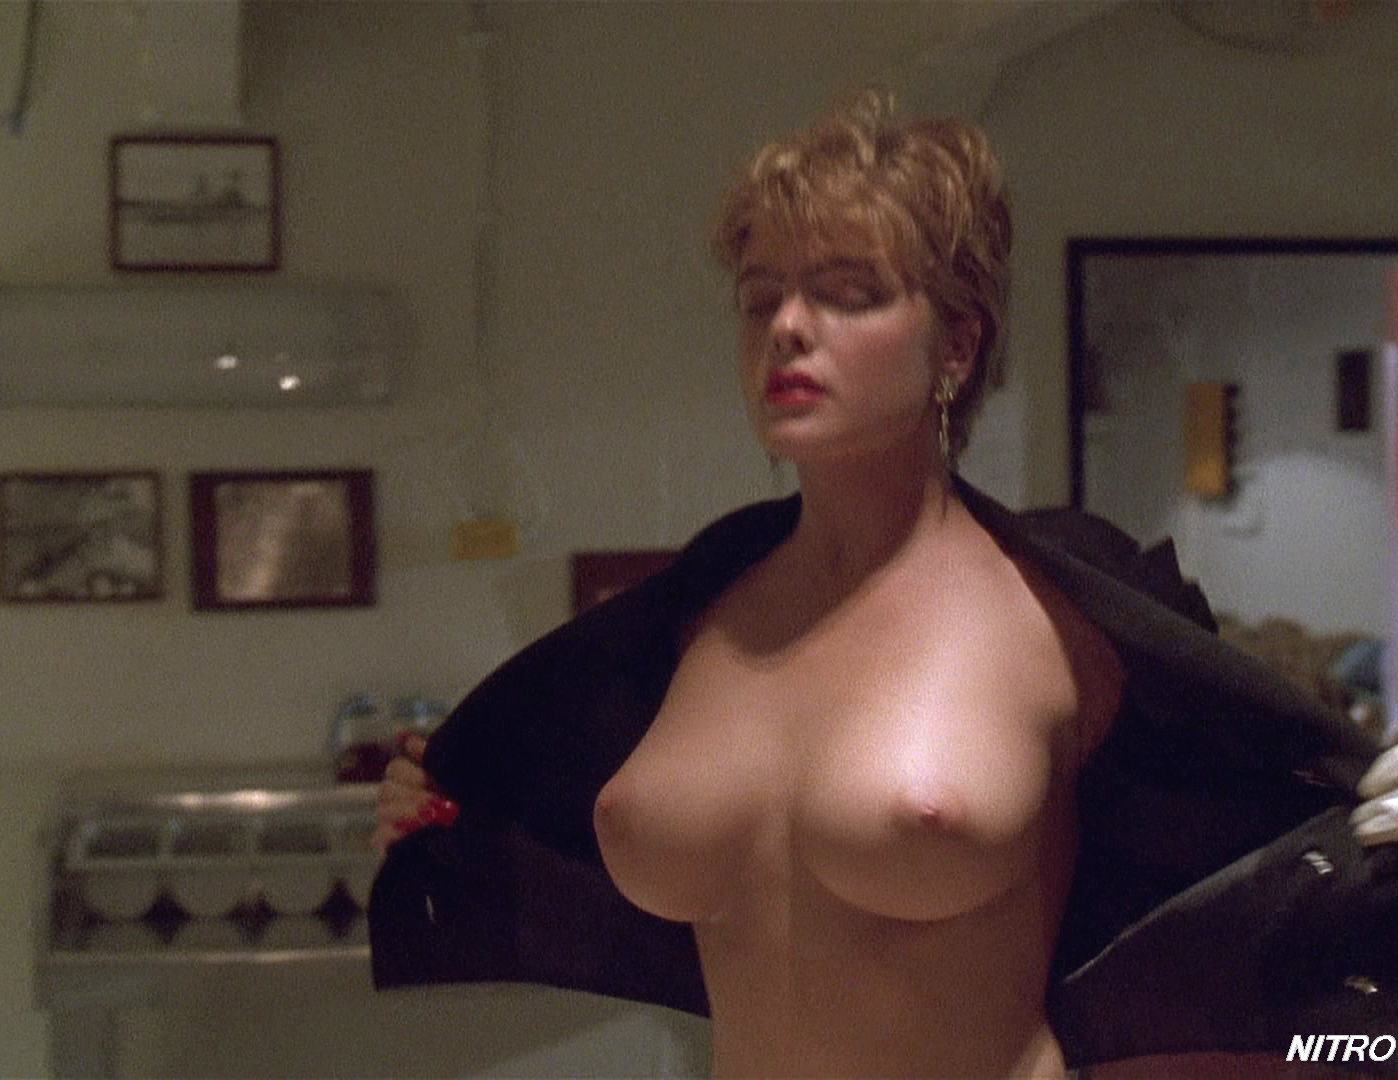 Idea think, nude erika eleniak naked sorry, that